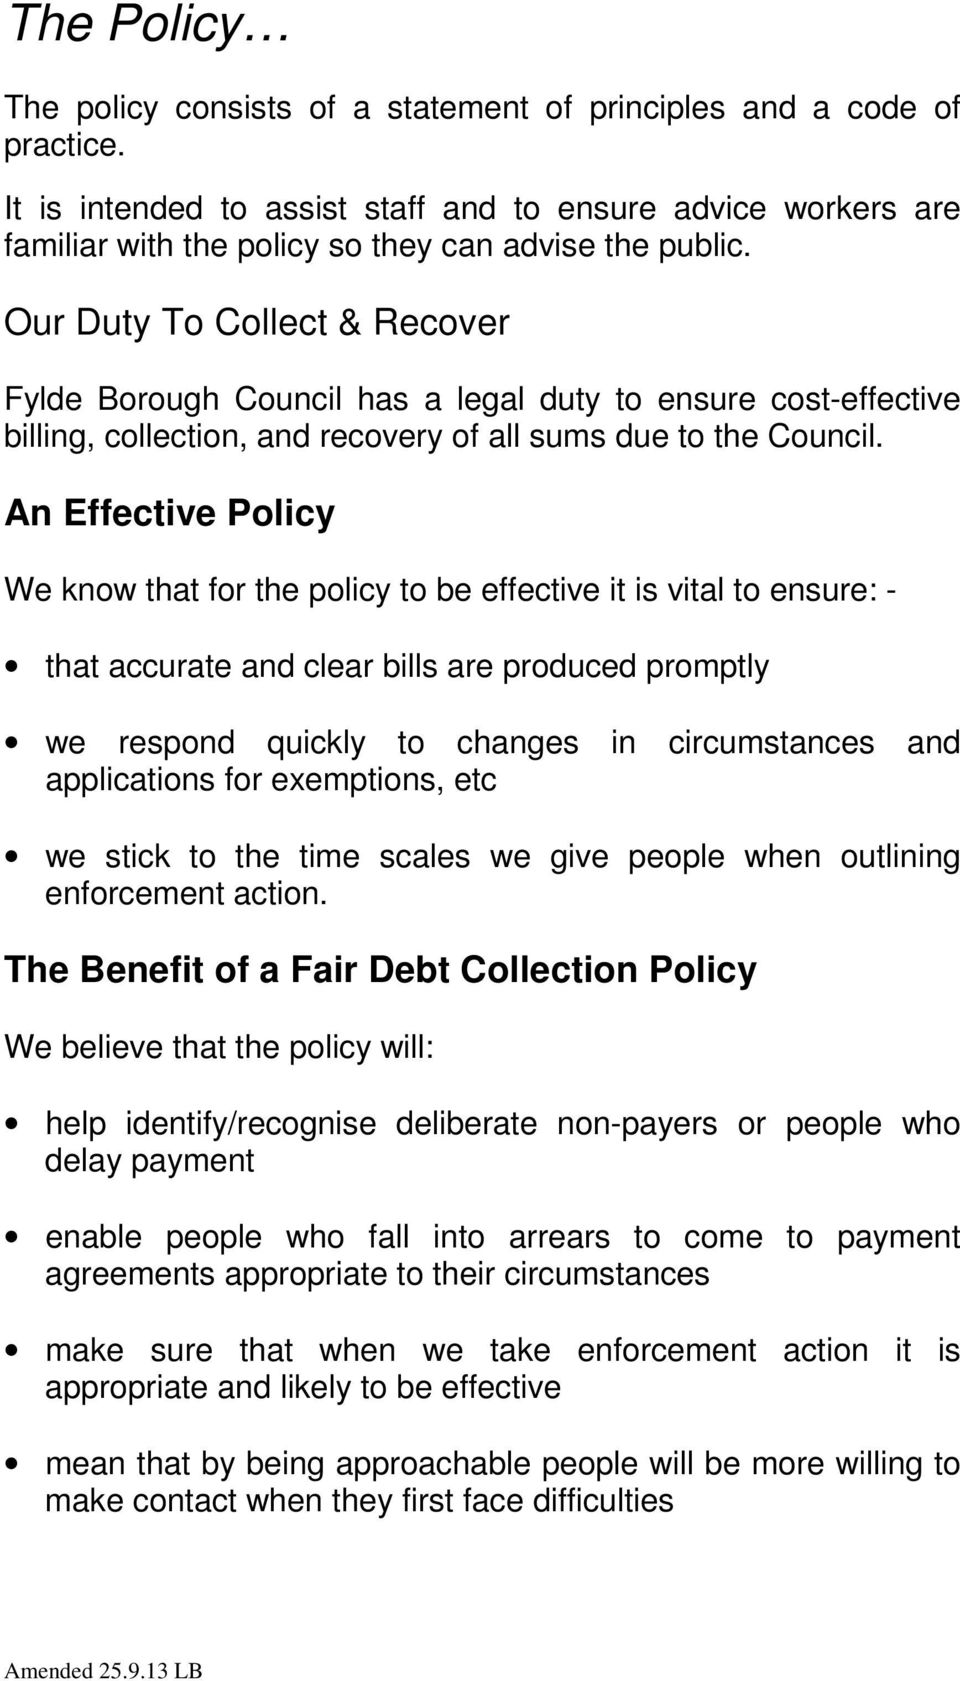 Our Duty To Collect & Recover Fylde Borough Council has a legal duty to ensure cost-effective billing, collection, and recovery of all sums due to the Council.